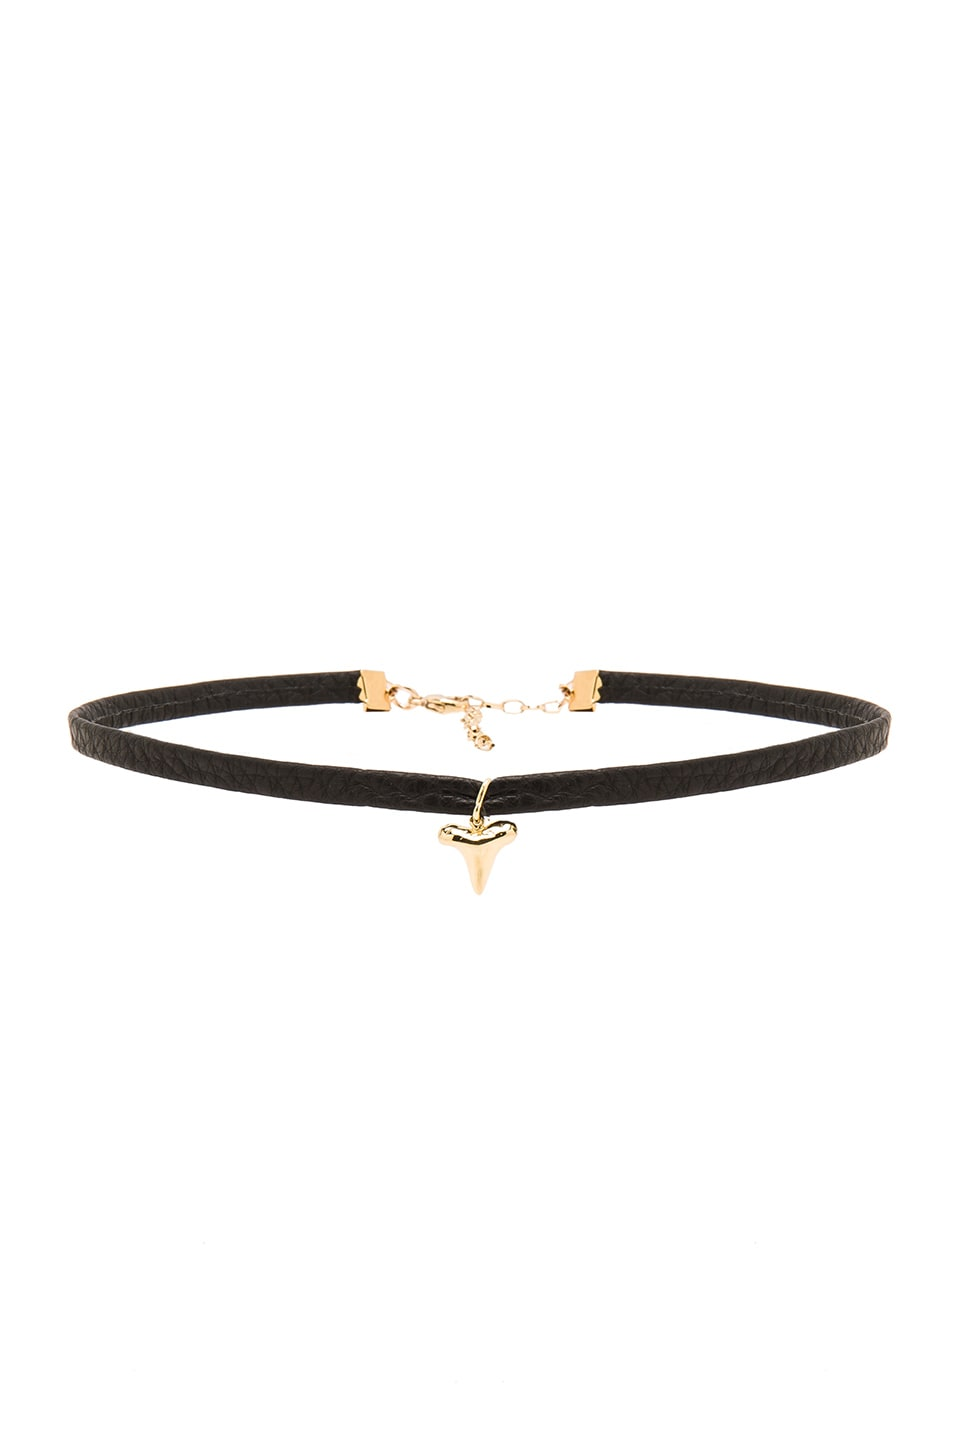 joolz by Martha Calvo Shark Tooth Choker in Gold